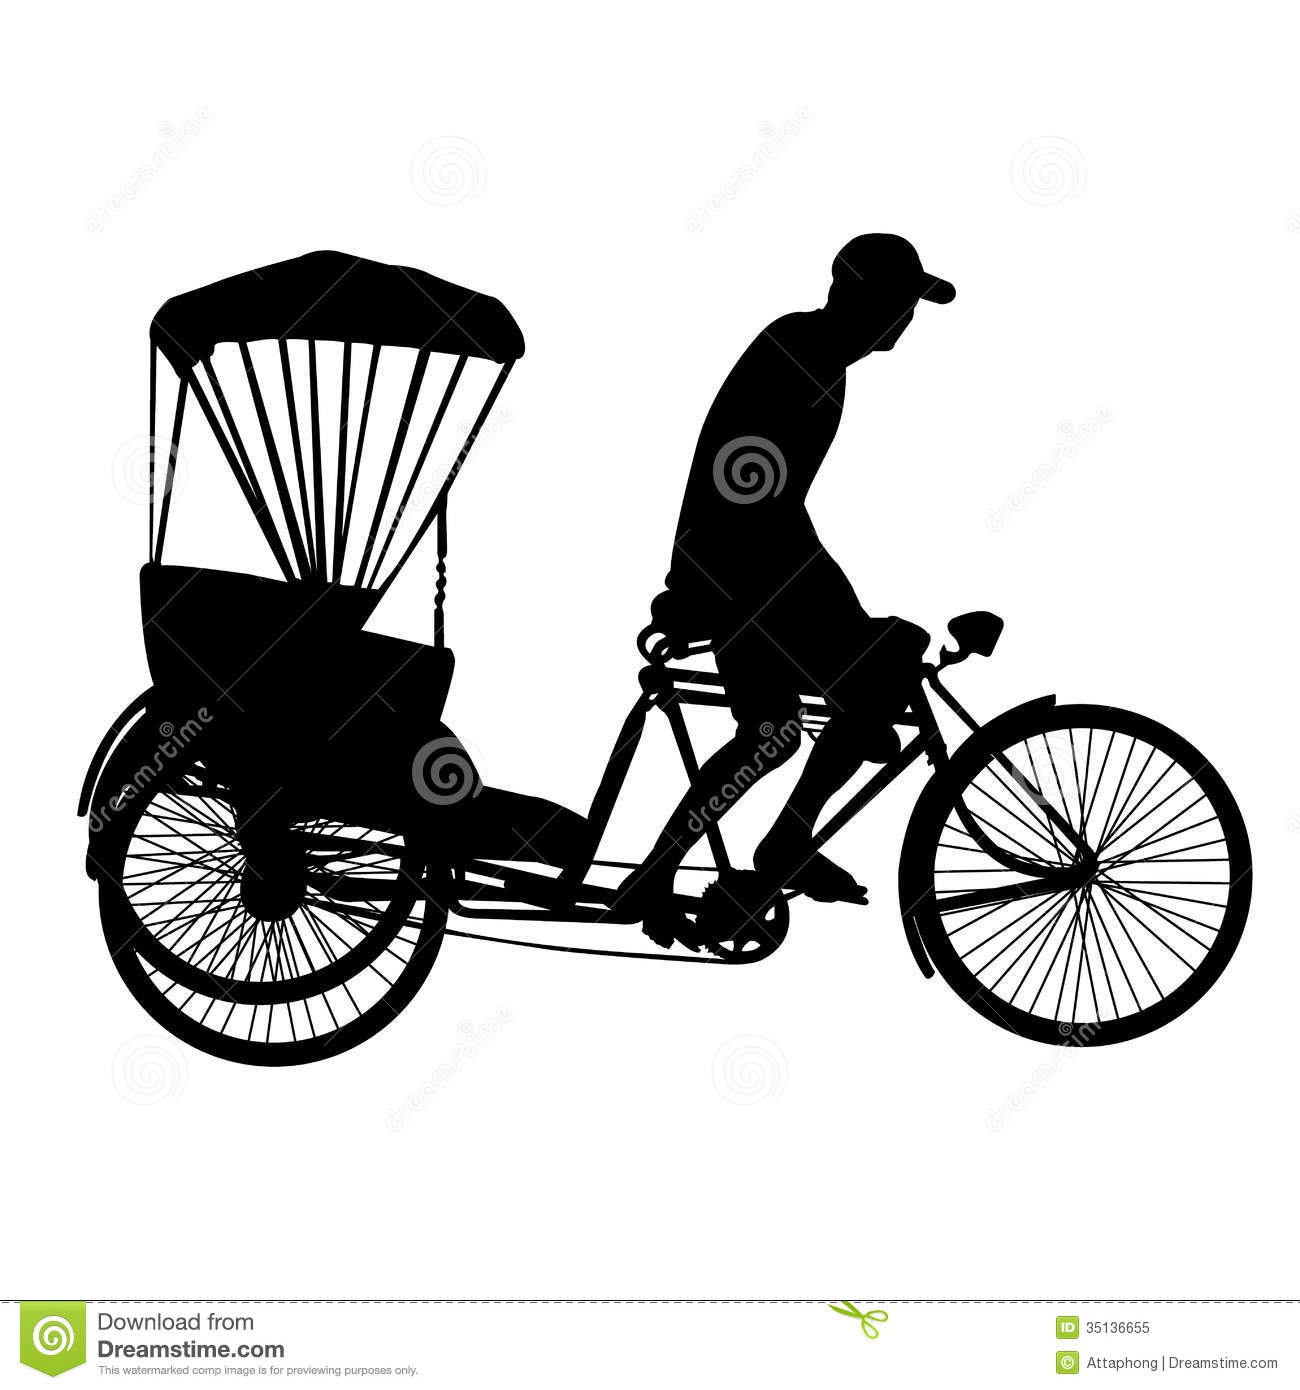 Cycle rickshaw clipart.